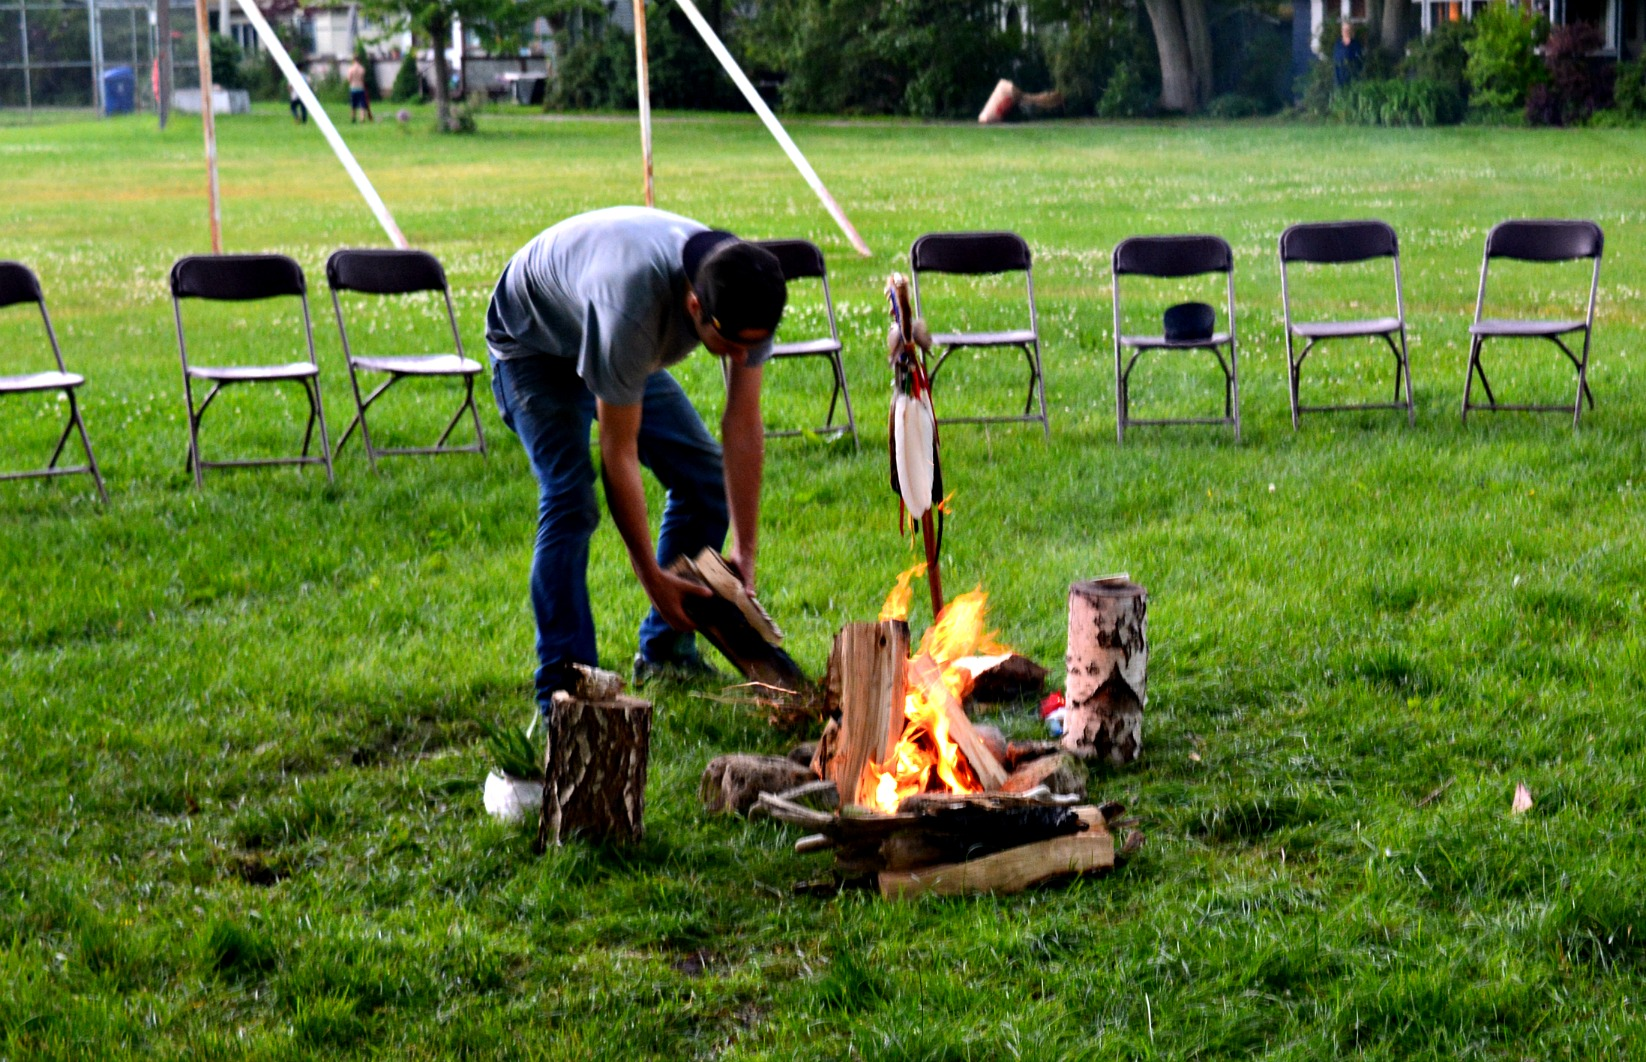 A firekeeper tends to the fire as it rained before the ceremony. The rain was said to be a blessing.